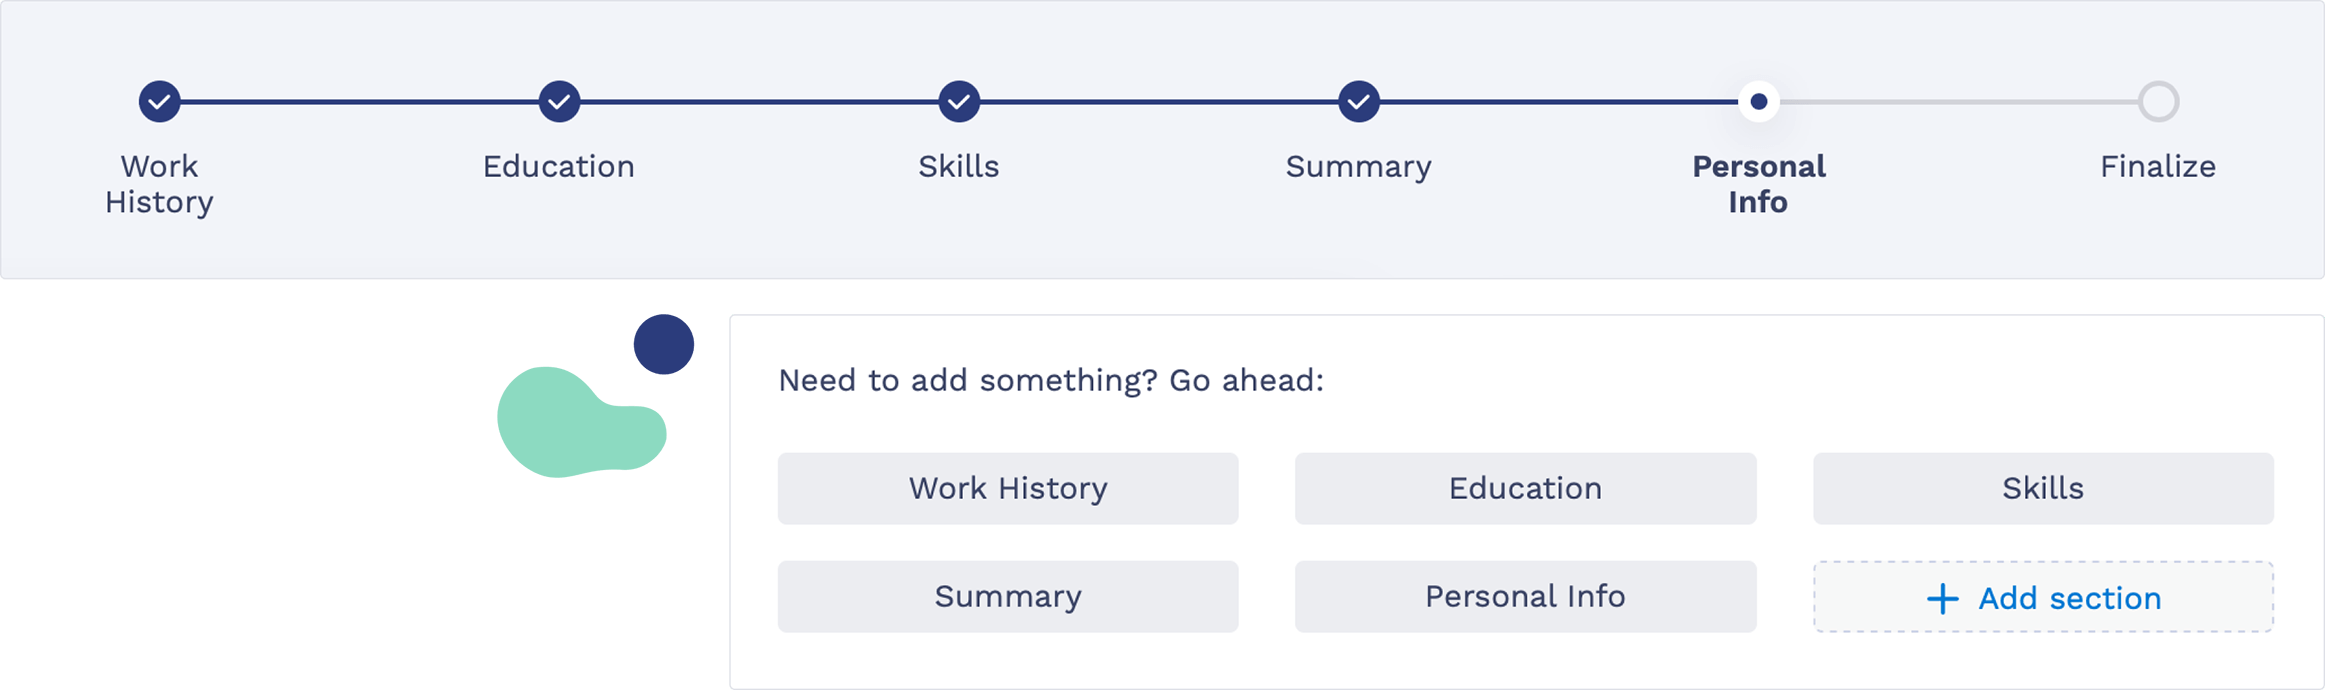 Resume Builder Navigation Panel